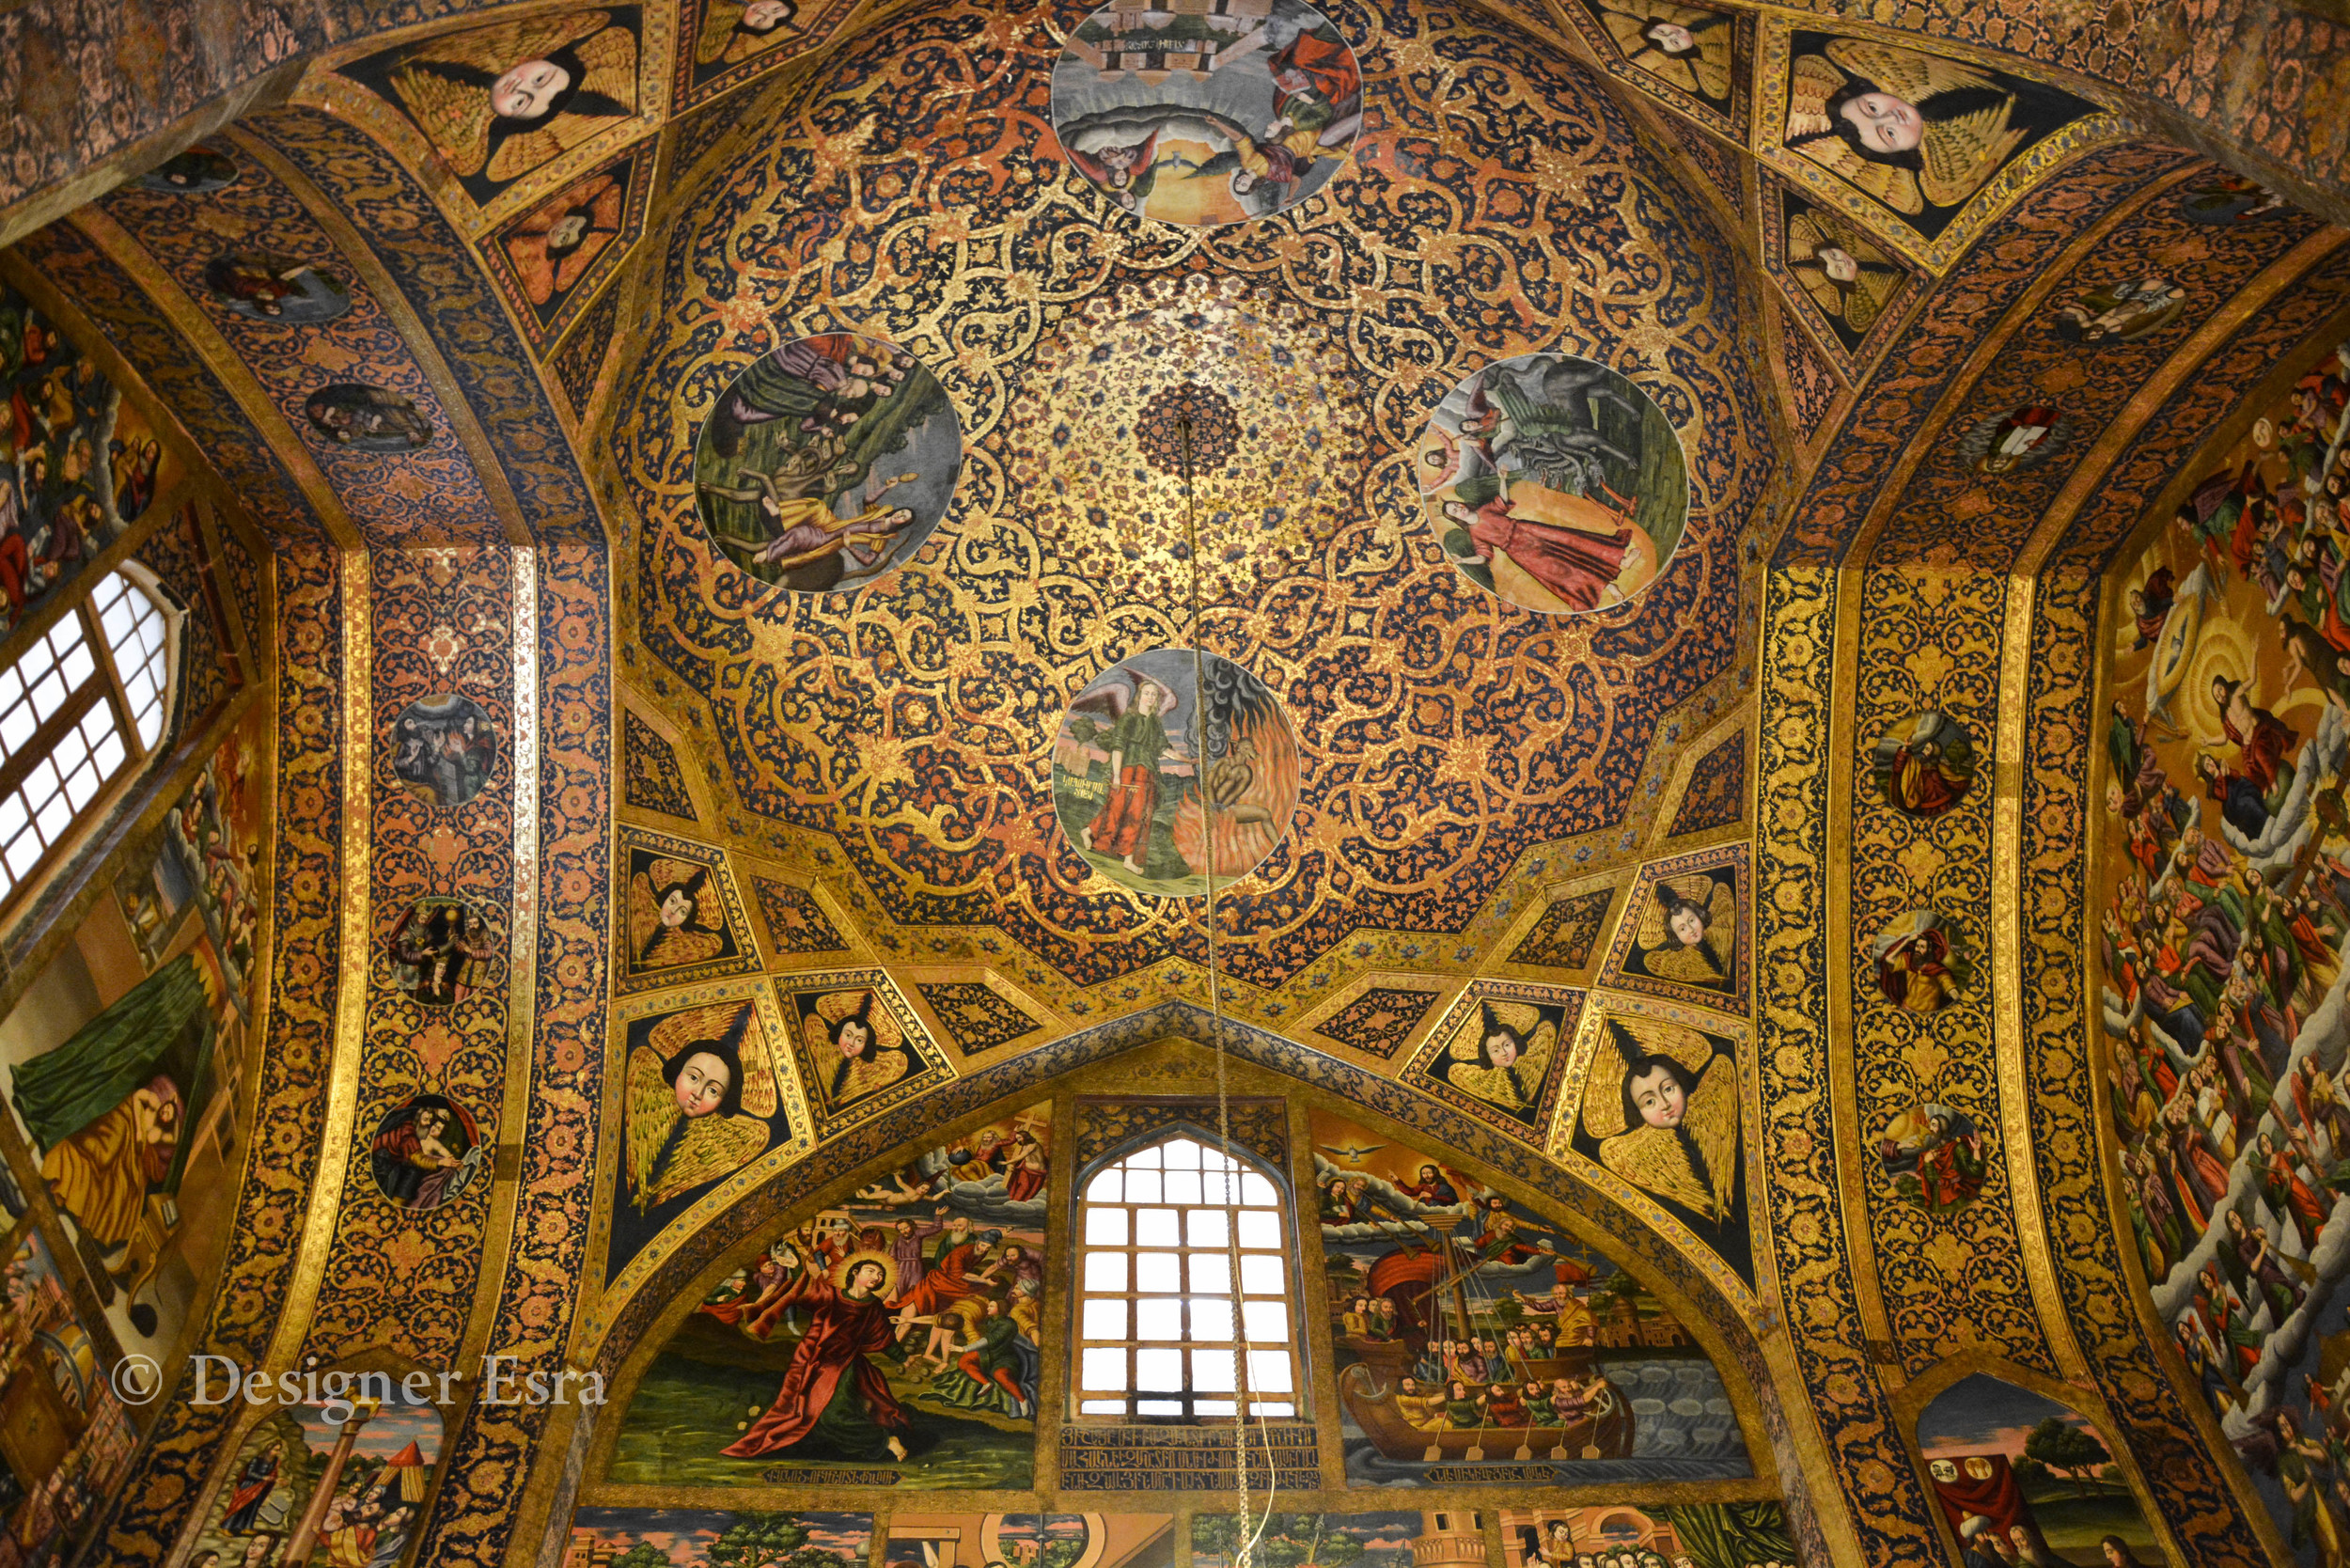 Persian Christian Icon Painting and Biomorphic Patterns in Iran